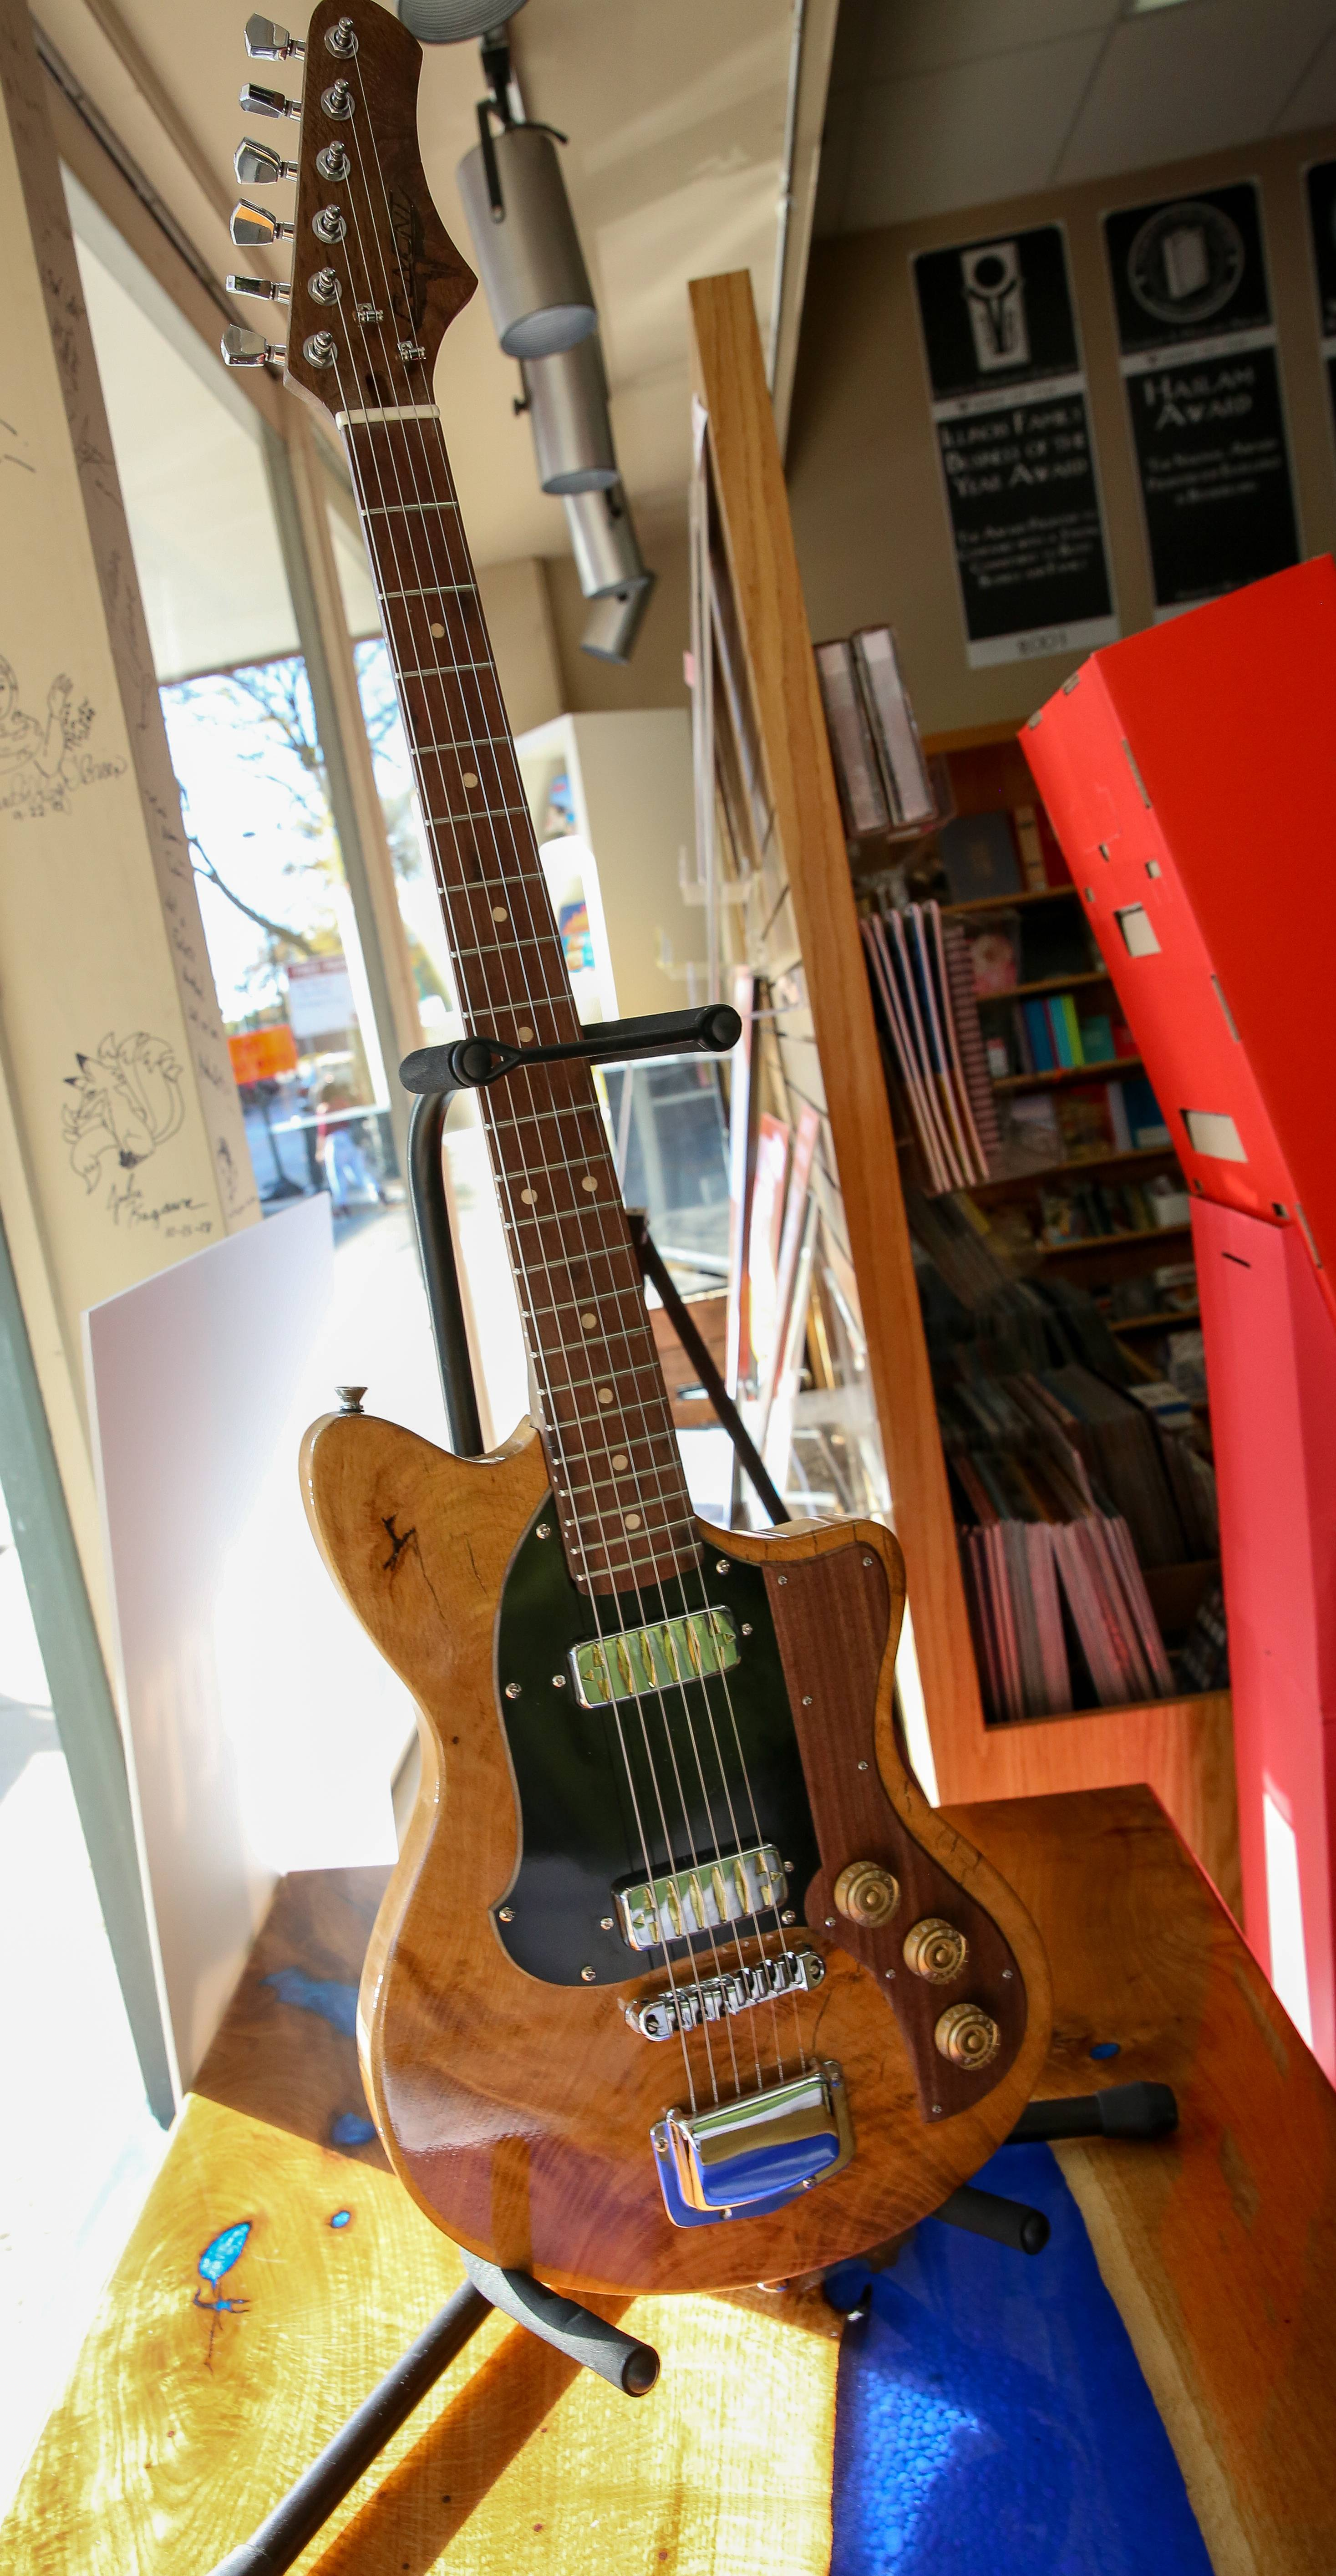 What DuPage's Hobson Oak gently wept: A wooden guitar to be auctioned for charity